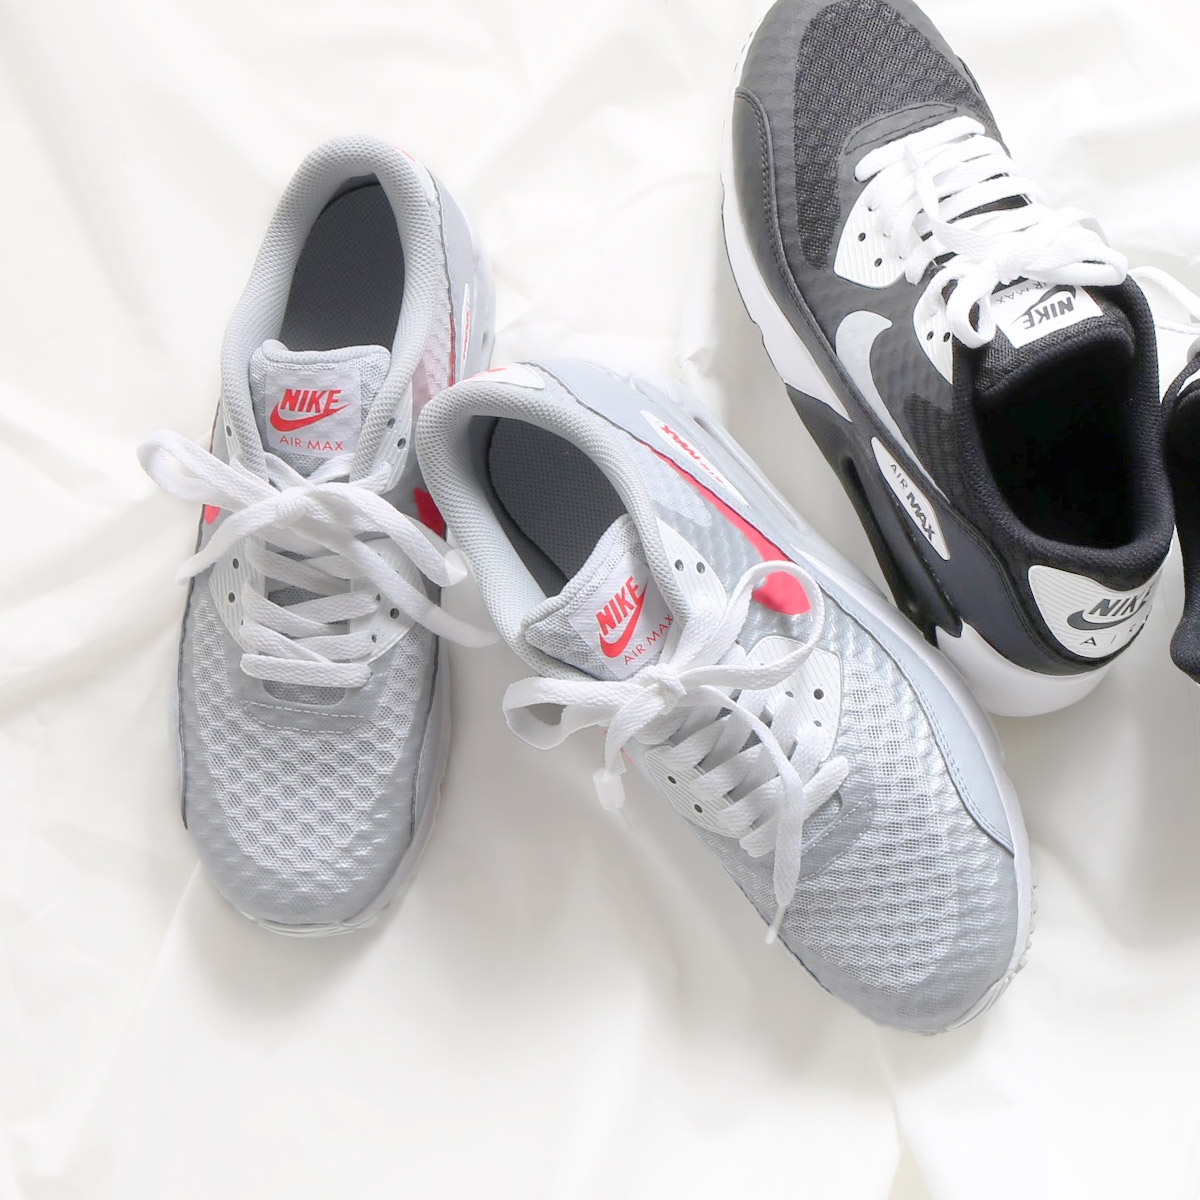 af350f82ddb NIKE AIR MAX 90 ULTRA 2.0 BR GS (Kie Ney AMAX 90 ultra 2.0 BR GS) PURE  PLATINUM RACER PINK-WHITE 17SU-I